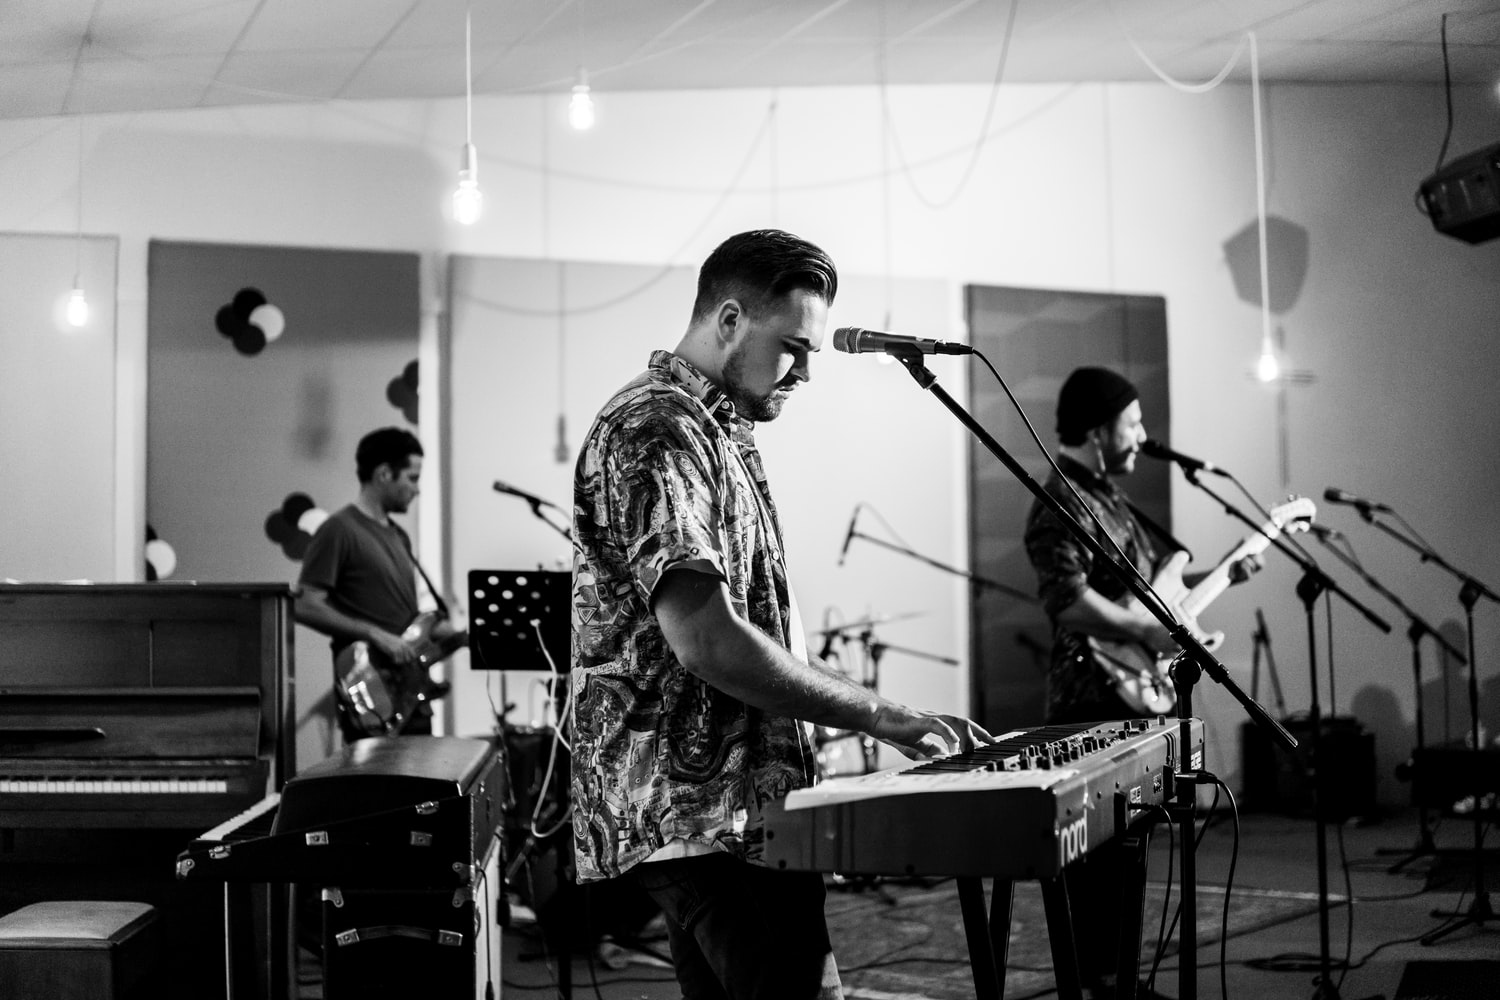 Black and white photo of band playing with keyboardist in the foreground. Man in flowery shirt plays Nord keyboard with bassist and guitarist.